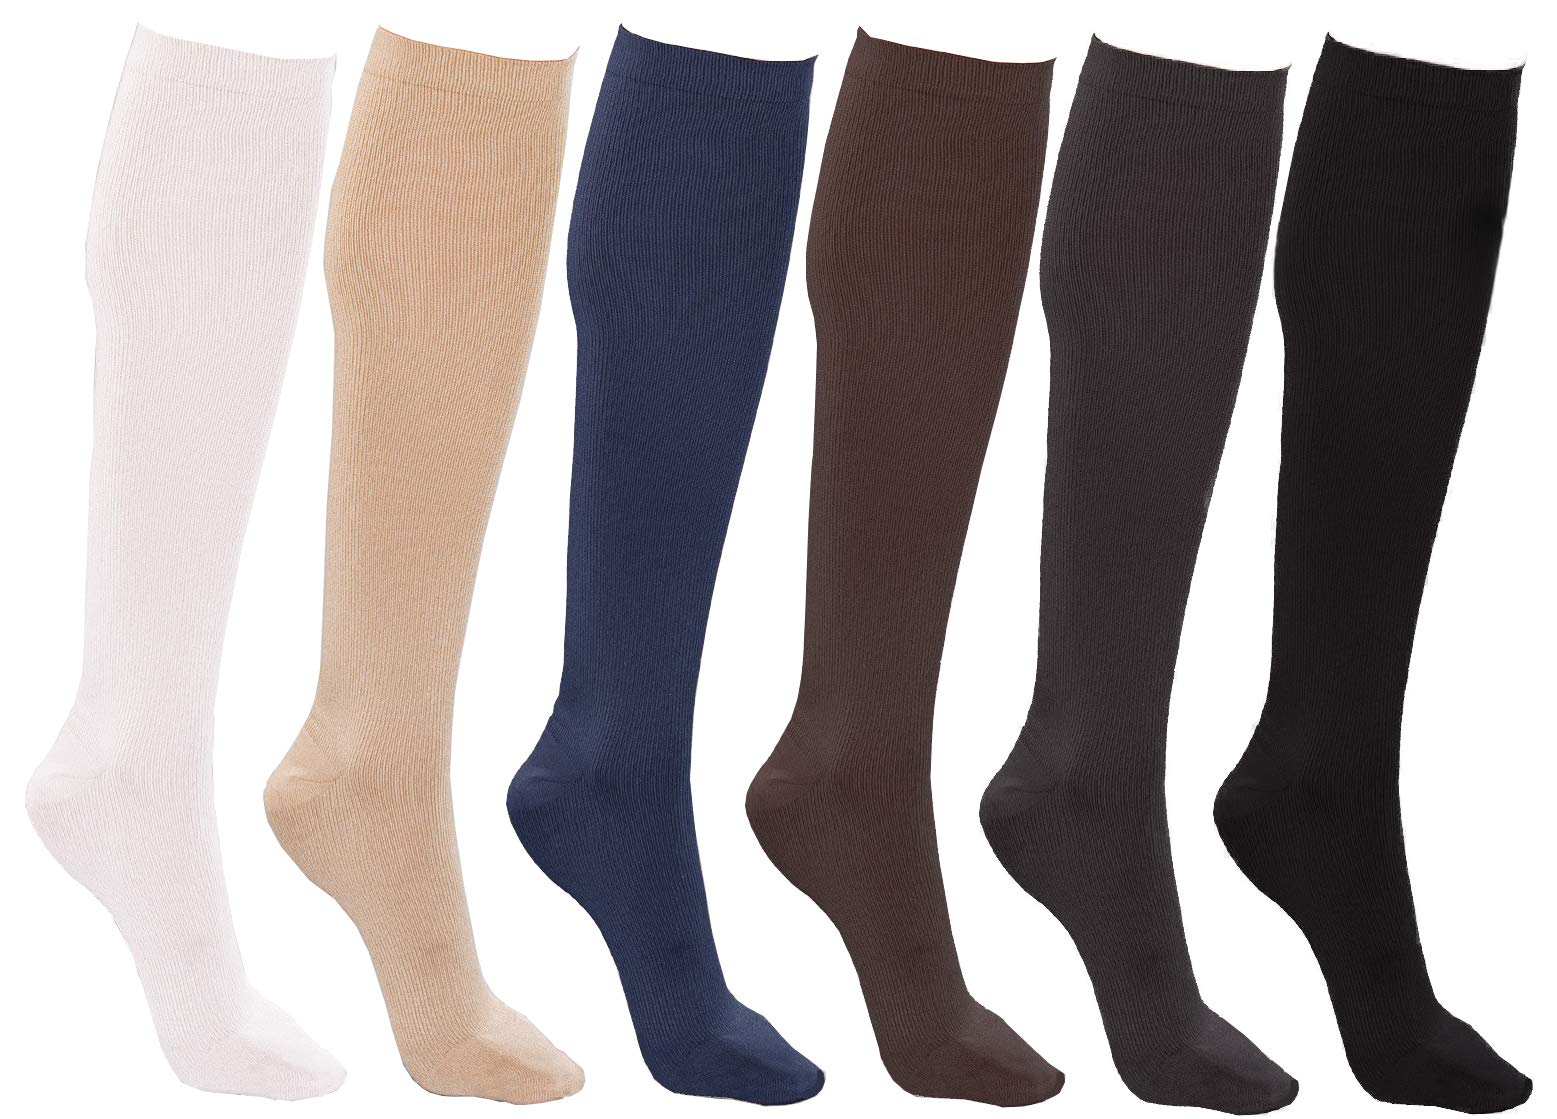 Women's Trouser Socks, 6 Pairs, Opaque Stretchy Nylon Knee High, Many Colors (6 Pairs Assorted #4)